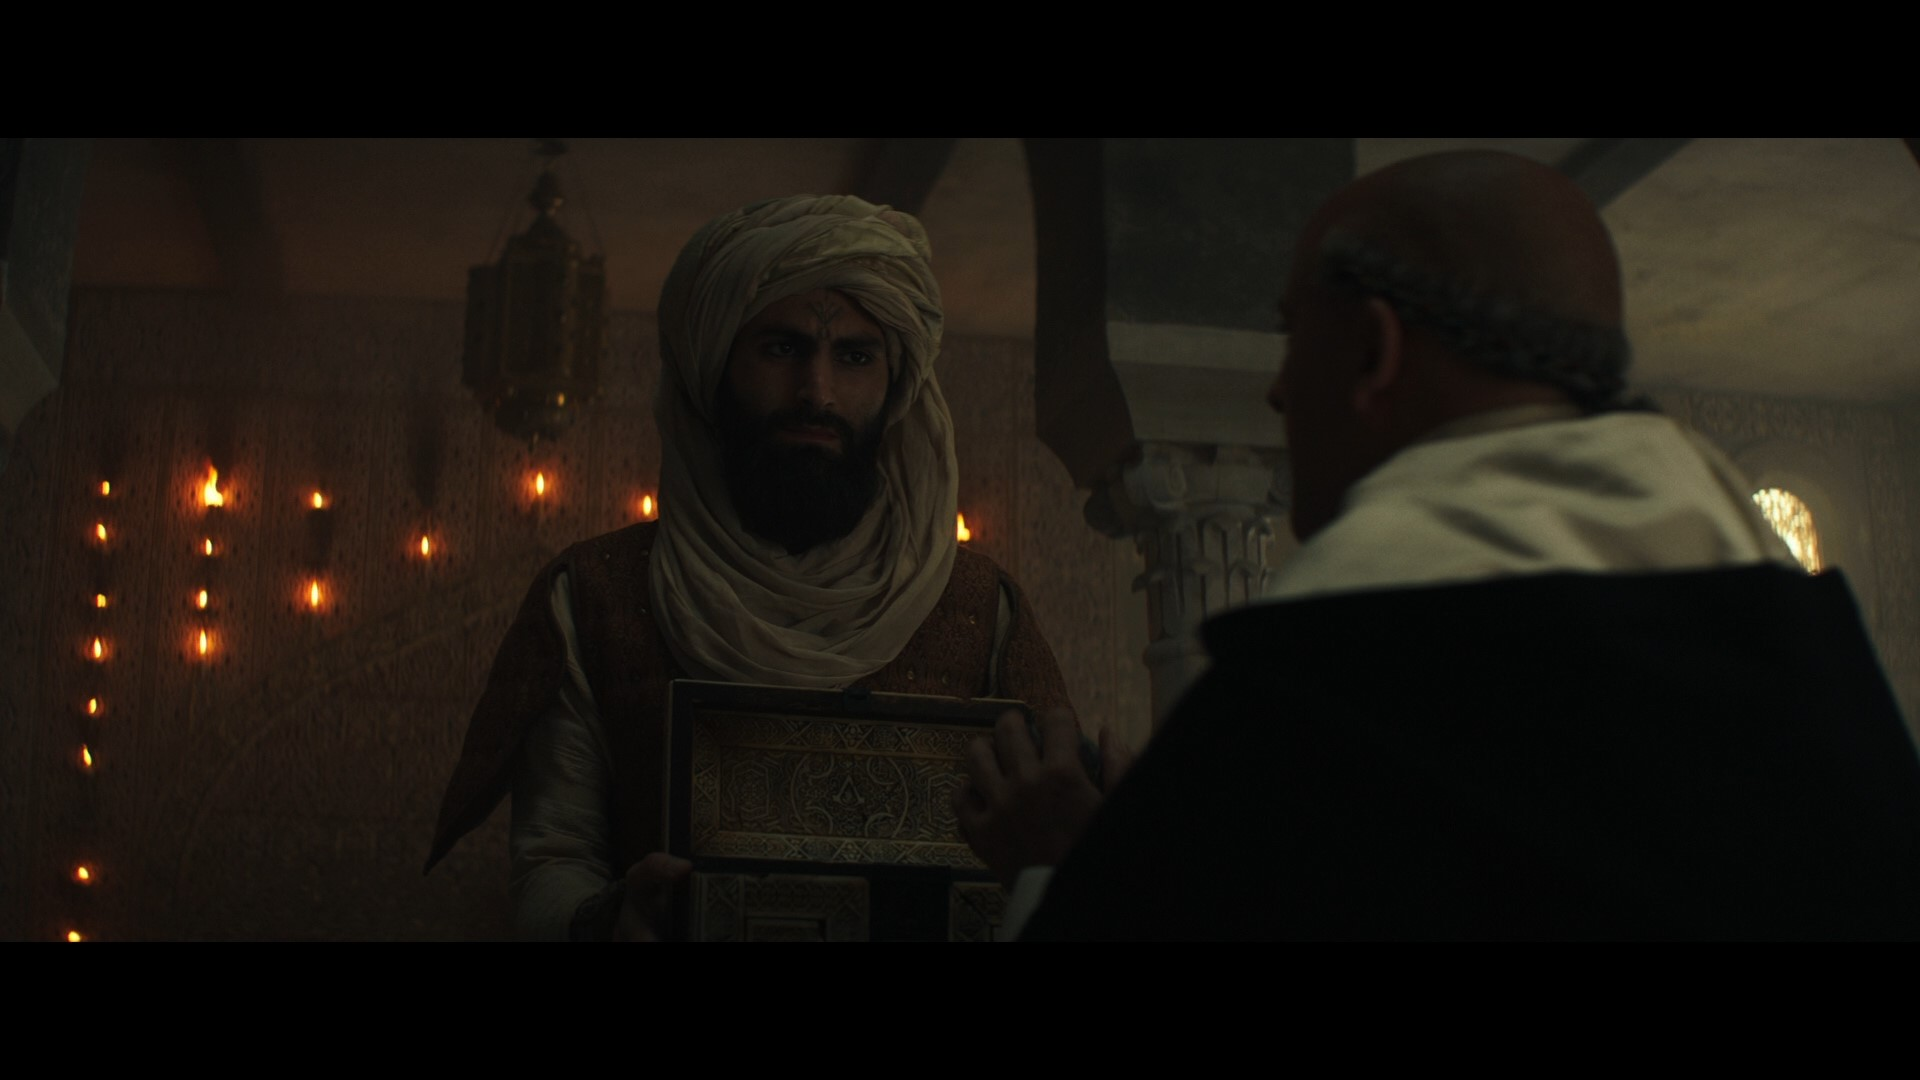 ASSASSIN'S CREED (2016) - Apple of Eden and Chest - Image 20 of 20